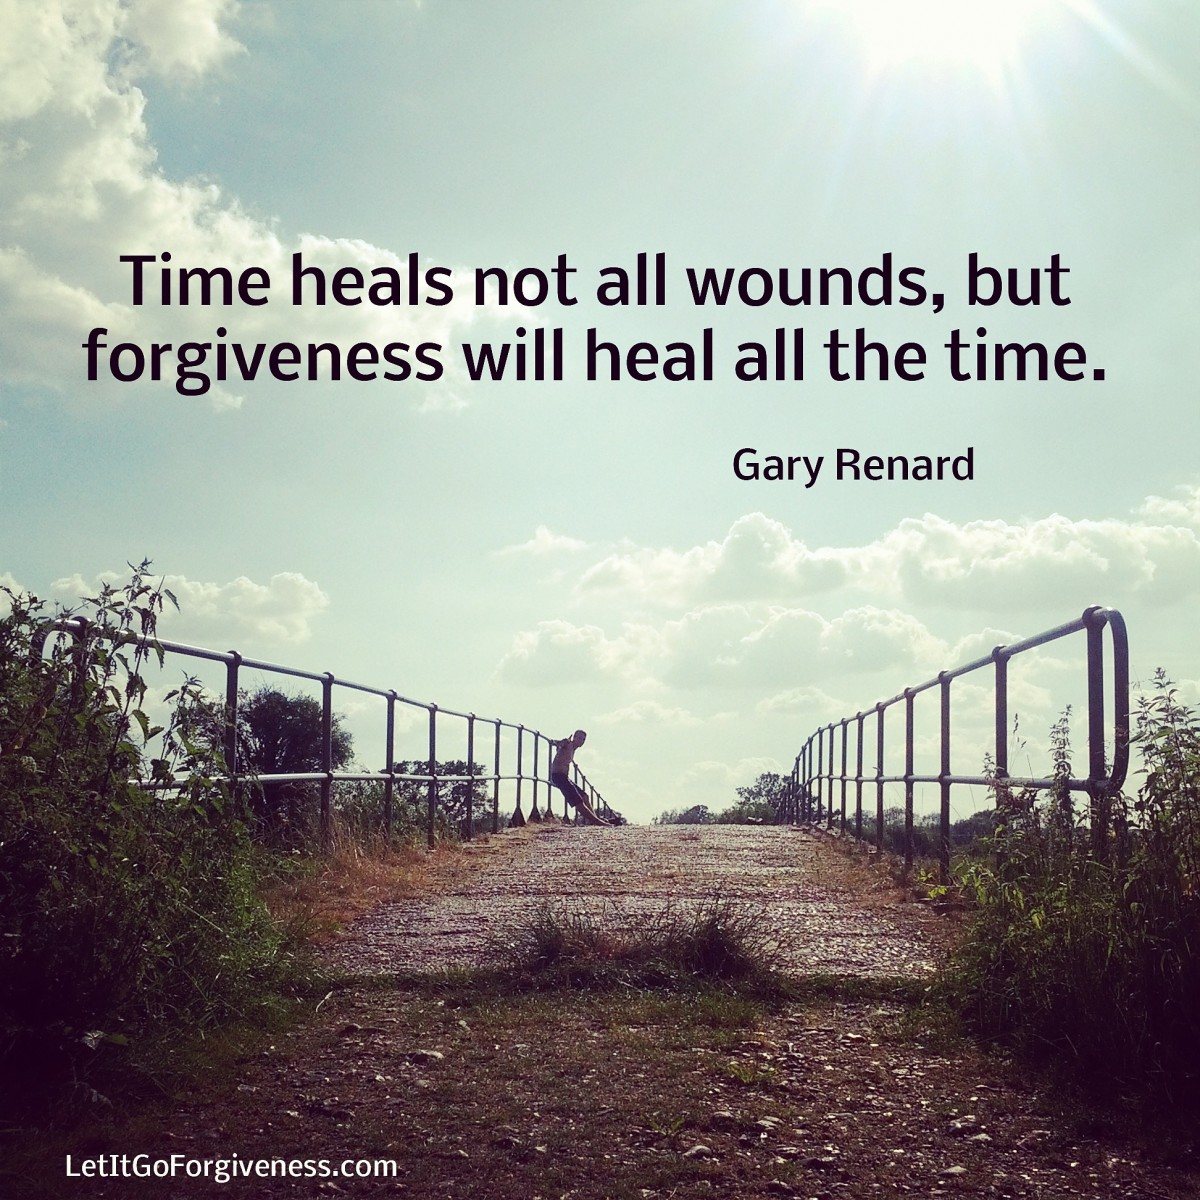 Quote Card - Forgiveness will heal all the time